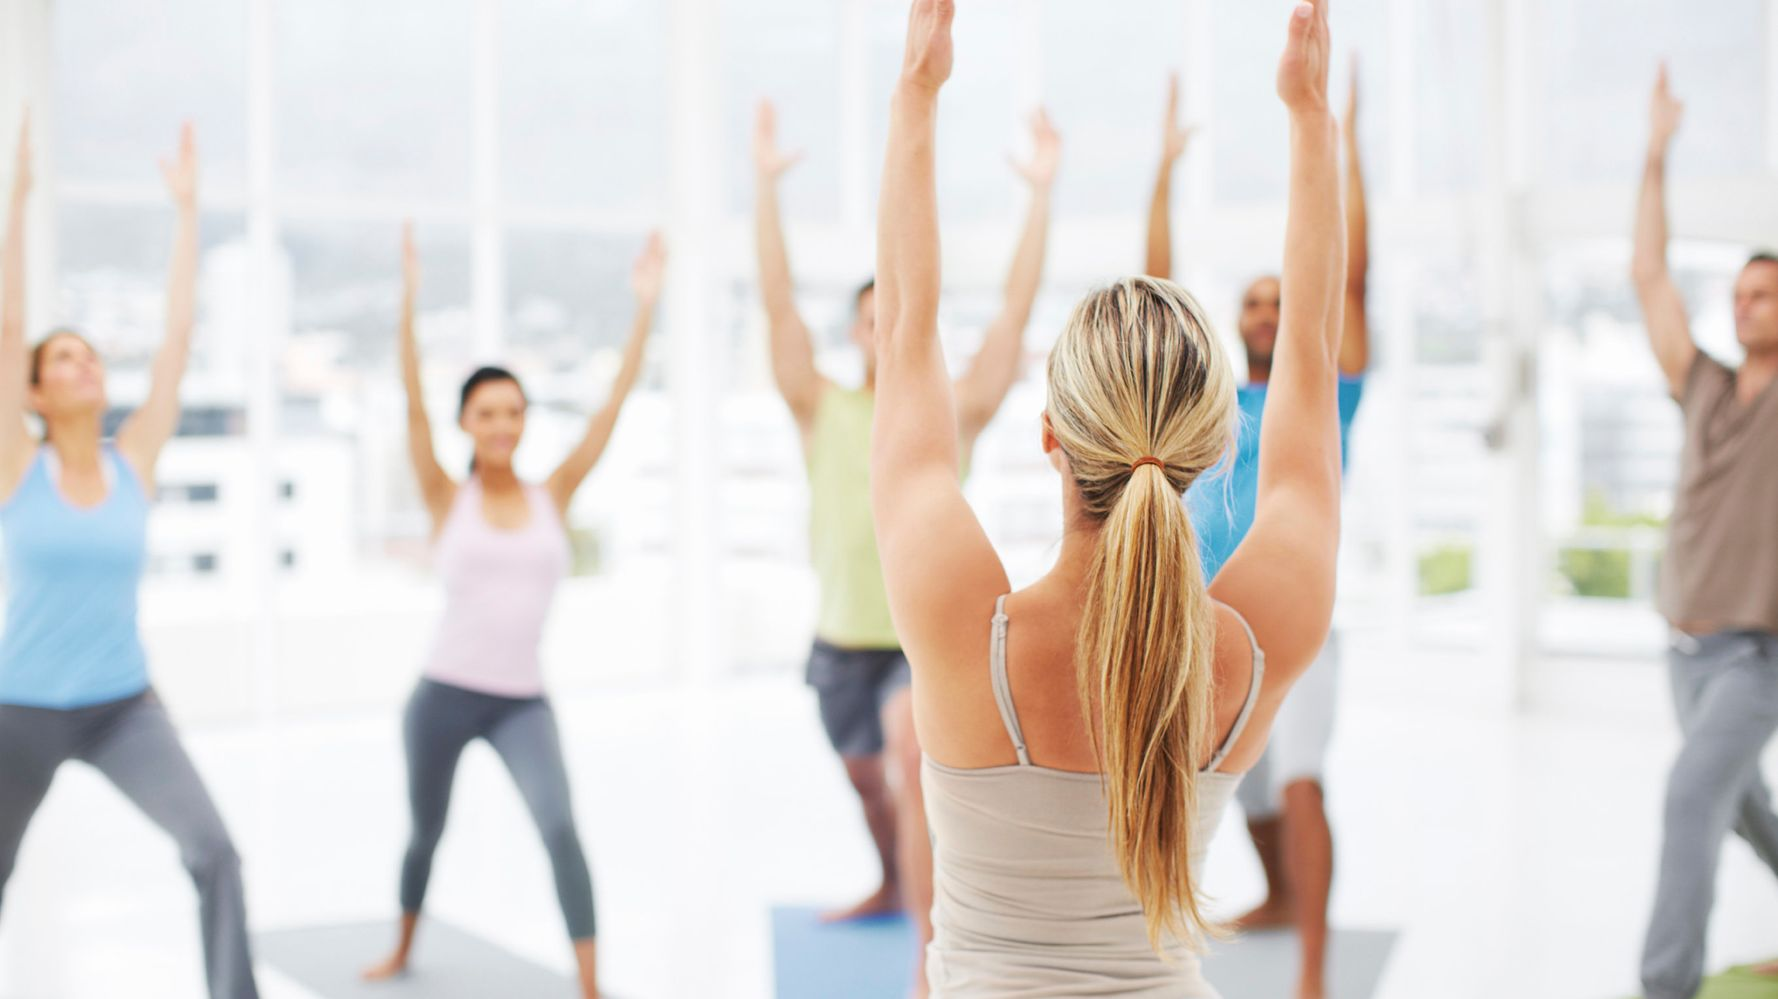 2 Poses Nearly Everyone Does Wrong In Their First Yoga Class